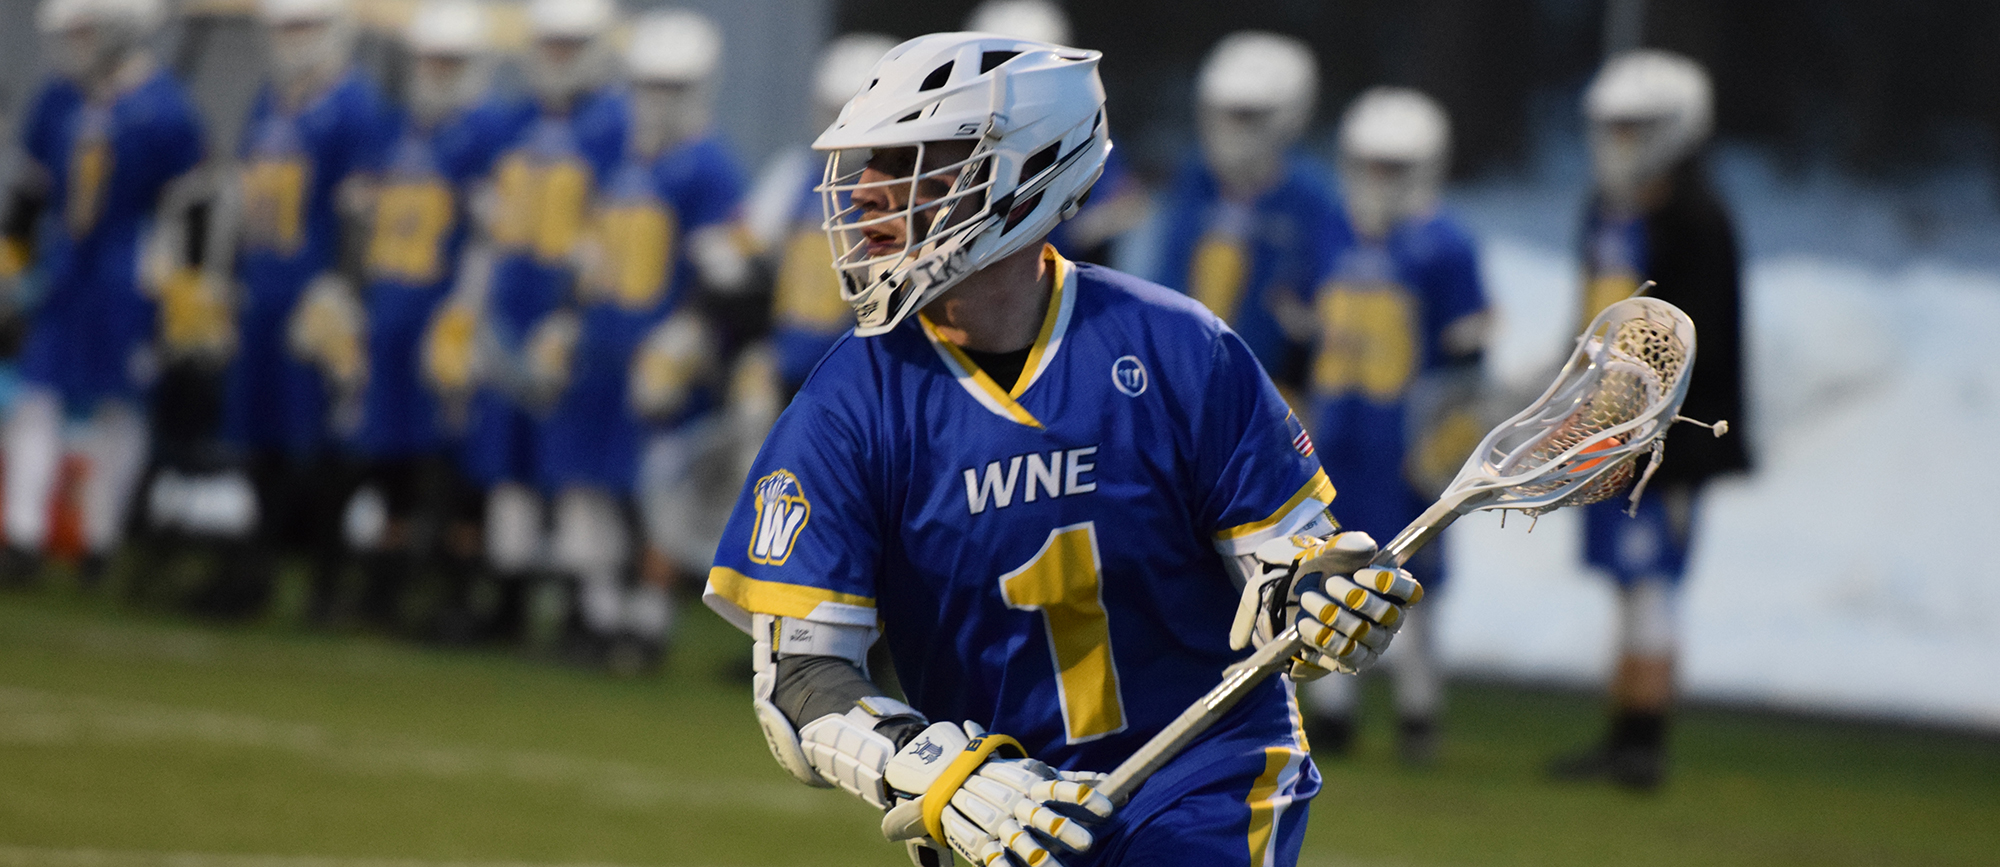 Senior Mikey Wood produced five points in Western New England's 14-13, double-overtime loss to Bates on Wednesday night. (Photo by Rachael Margossian)